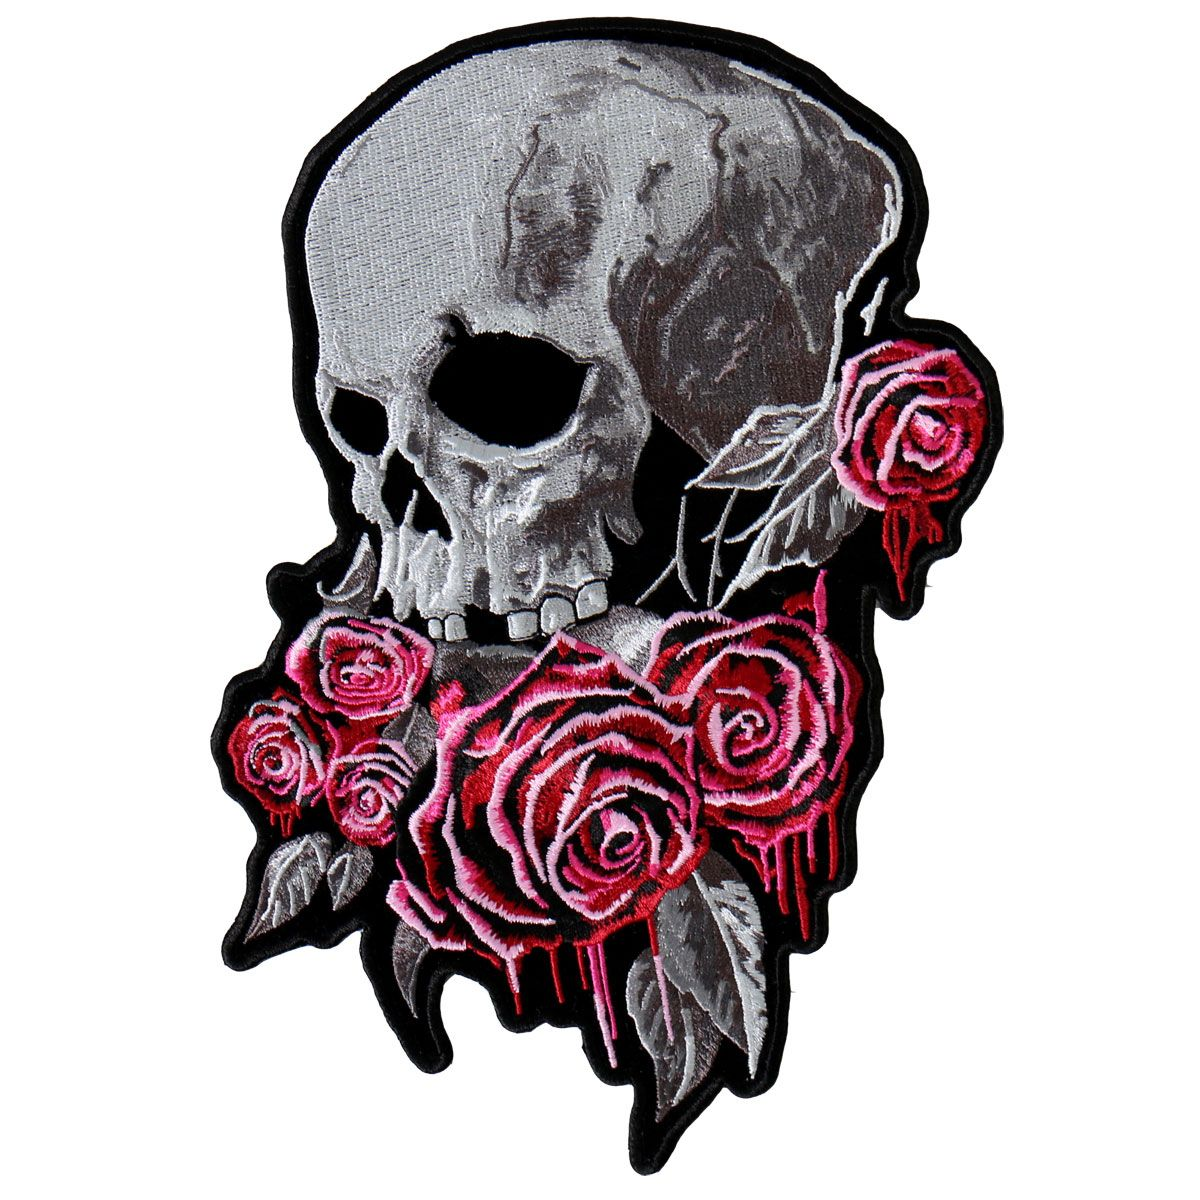 Hot+Leathers+Bleeding+Roses+Patch Vest patches, Rose